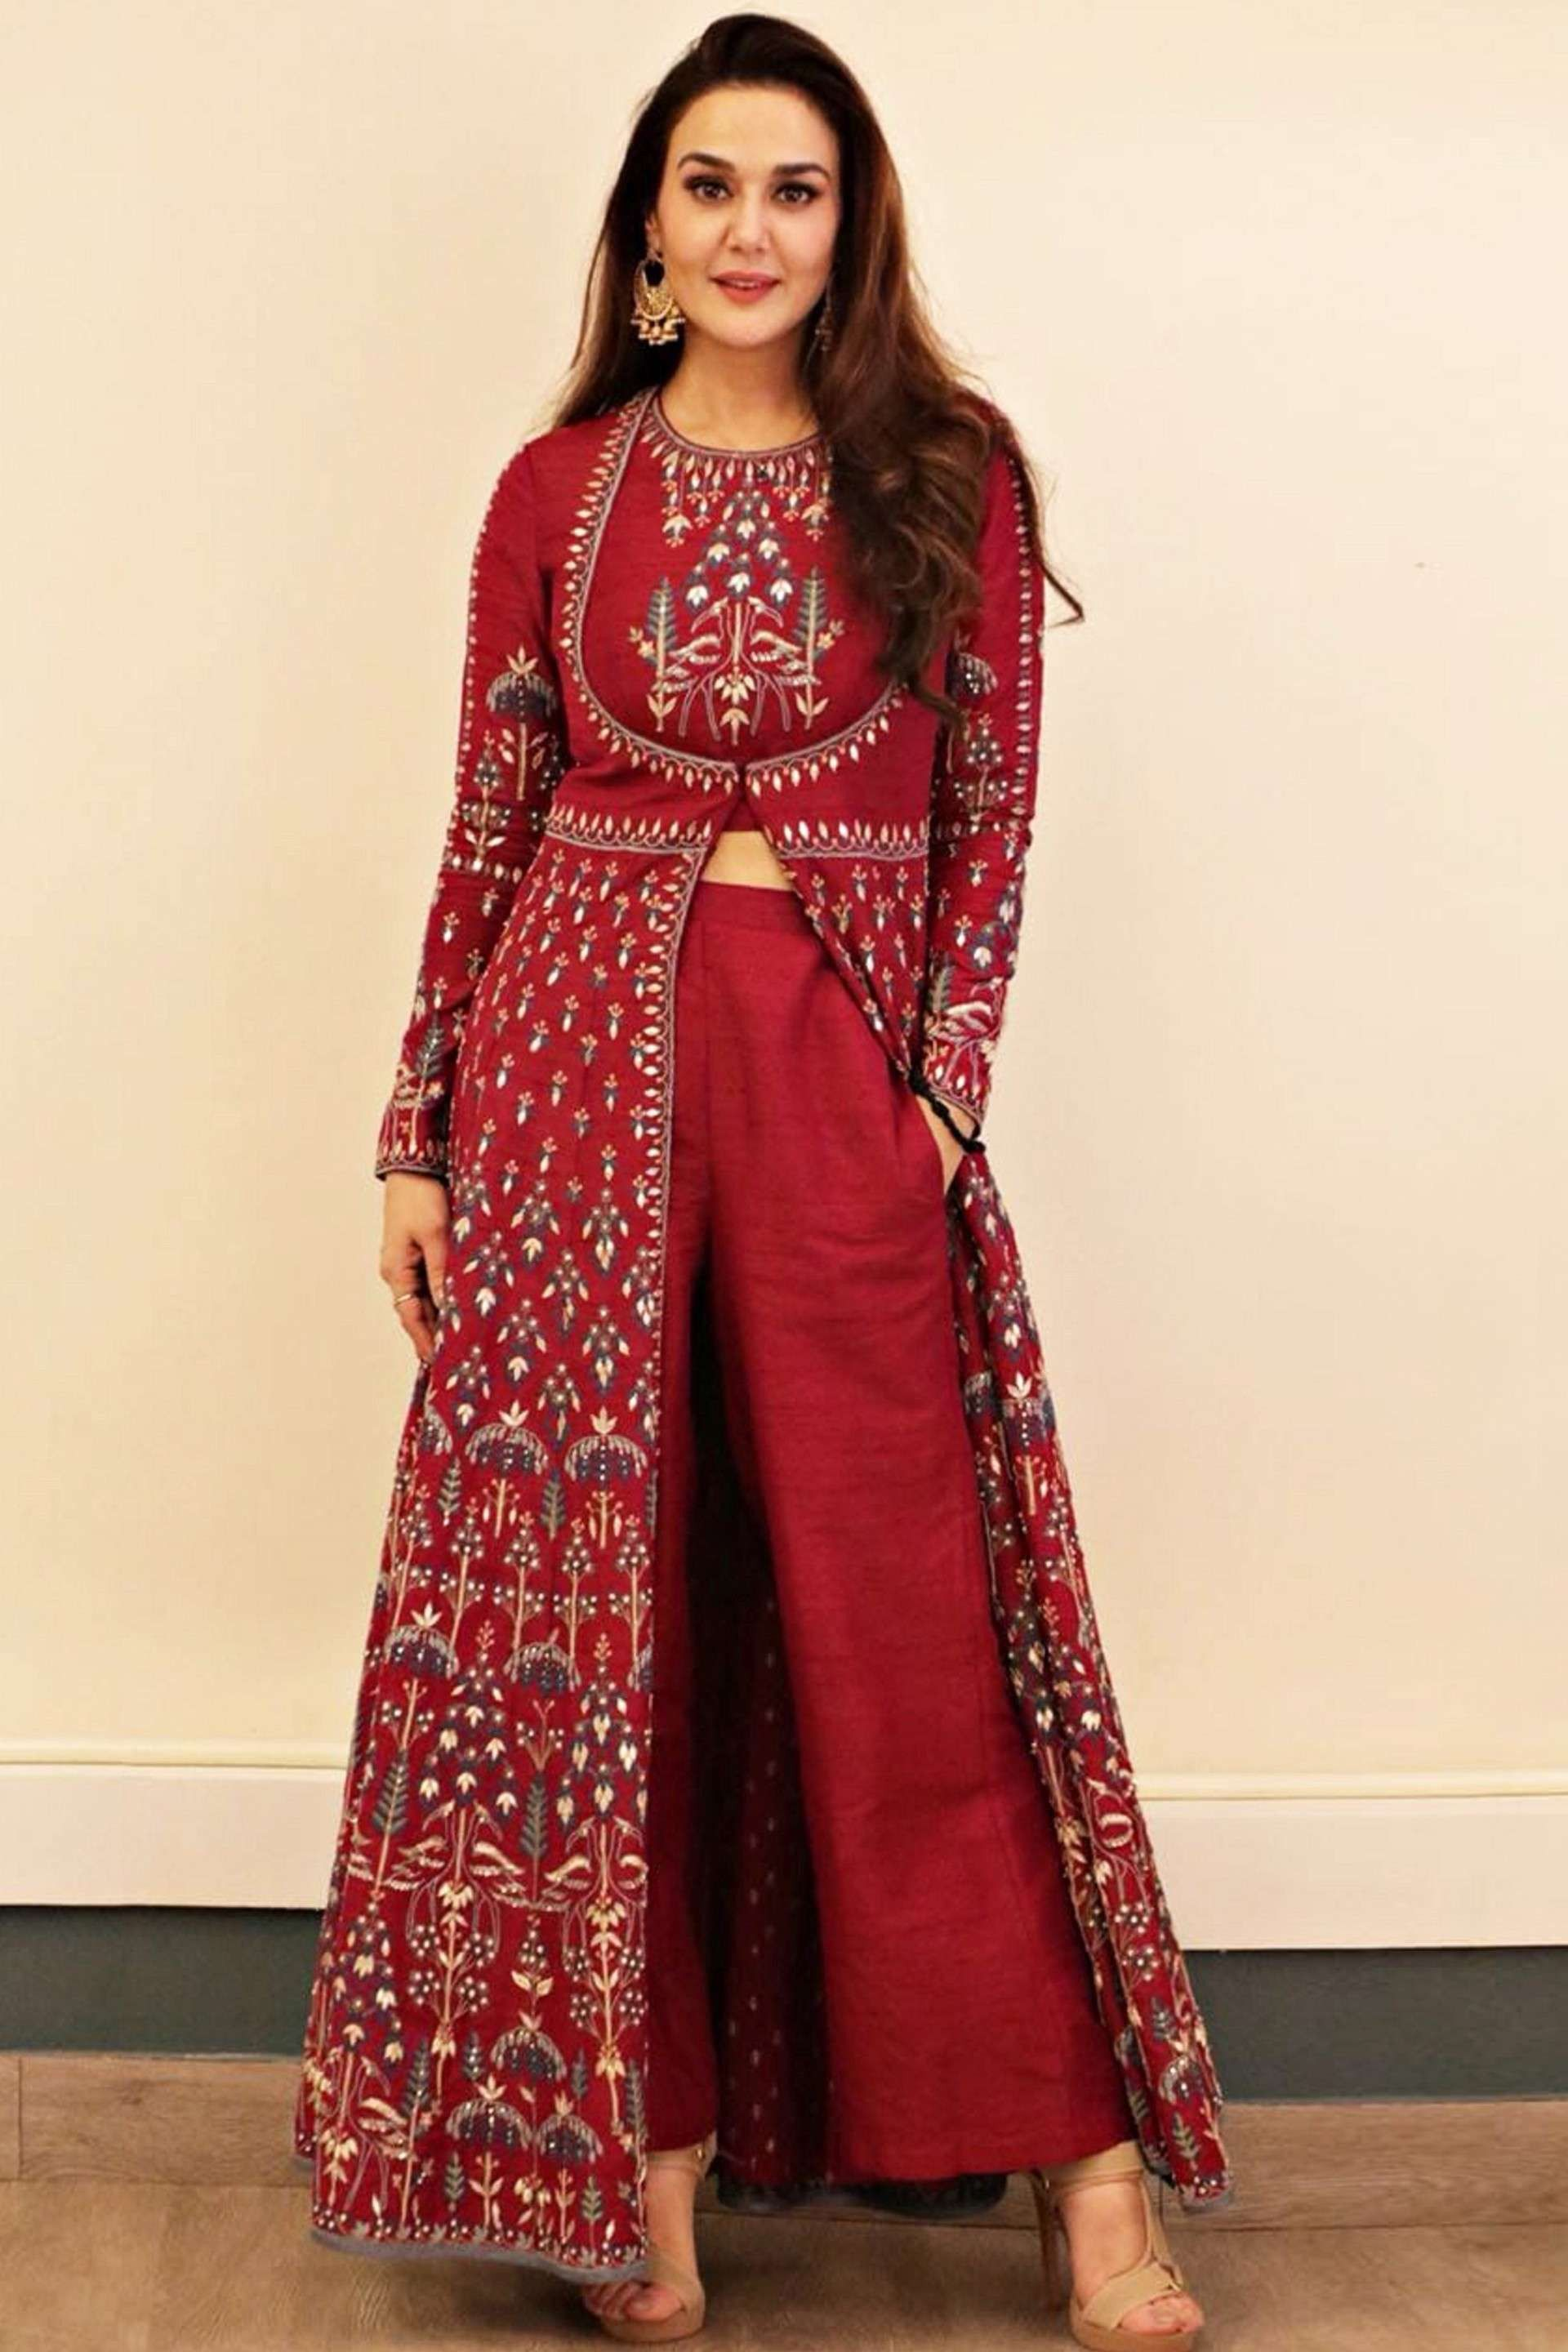 Preity Zinta Wearing The Raga Suit From Anita Dongre Picture Anita Dongre Website Indian Outfits Designer Dresses Indian Indian Designer Outfits